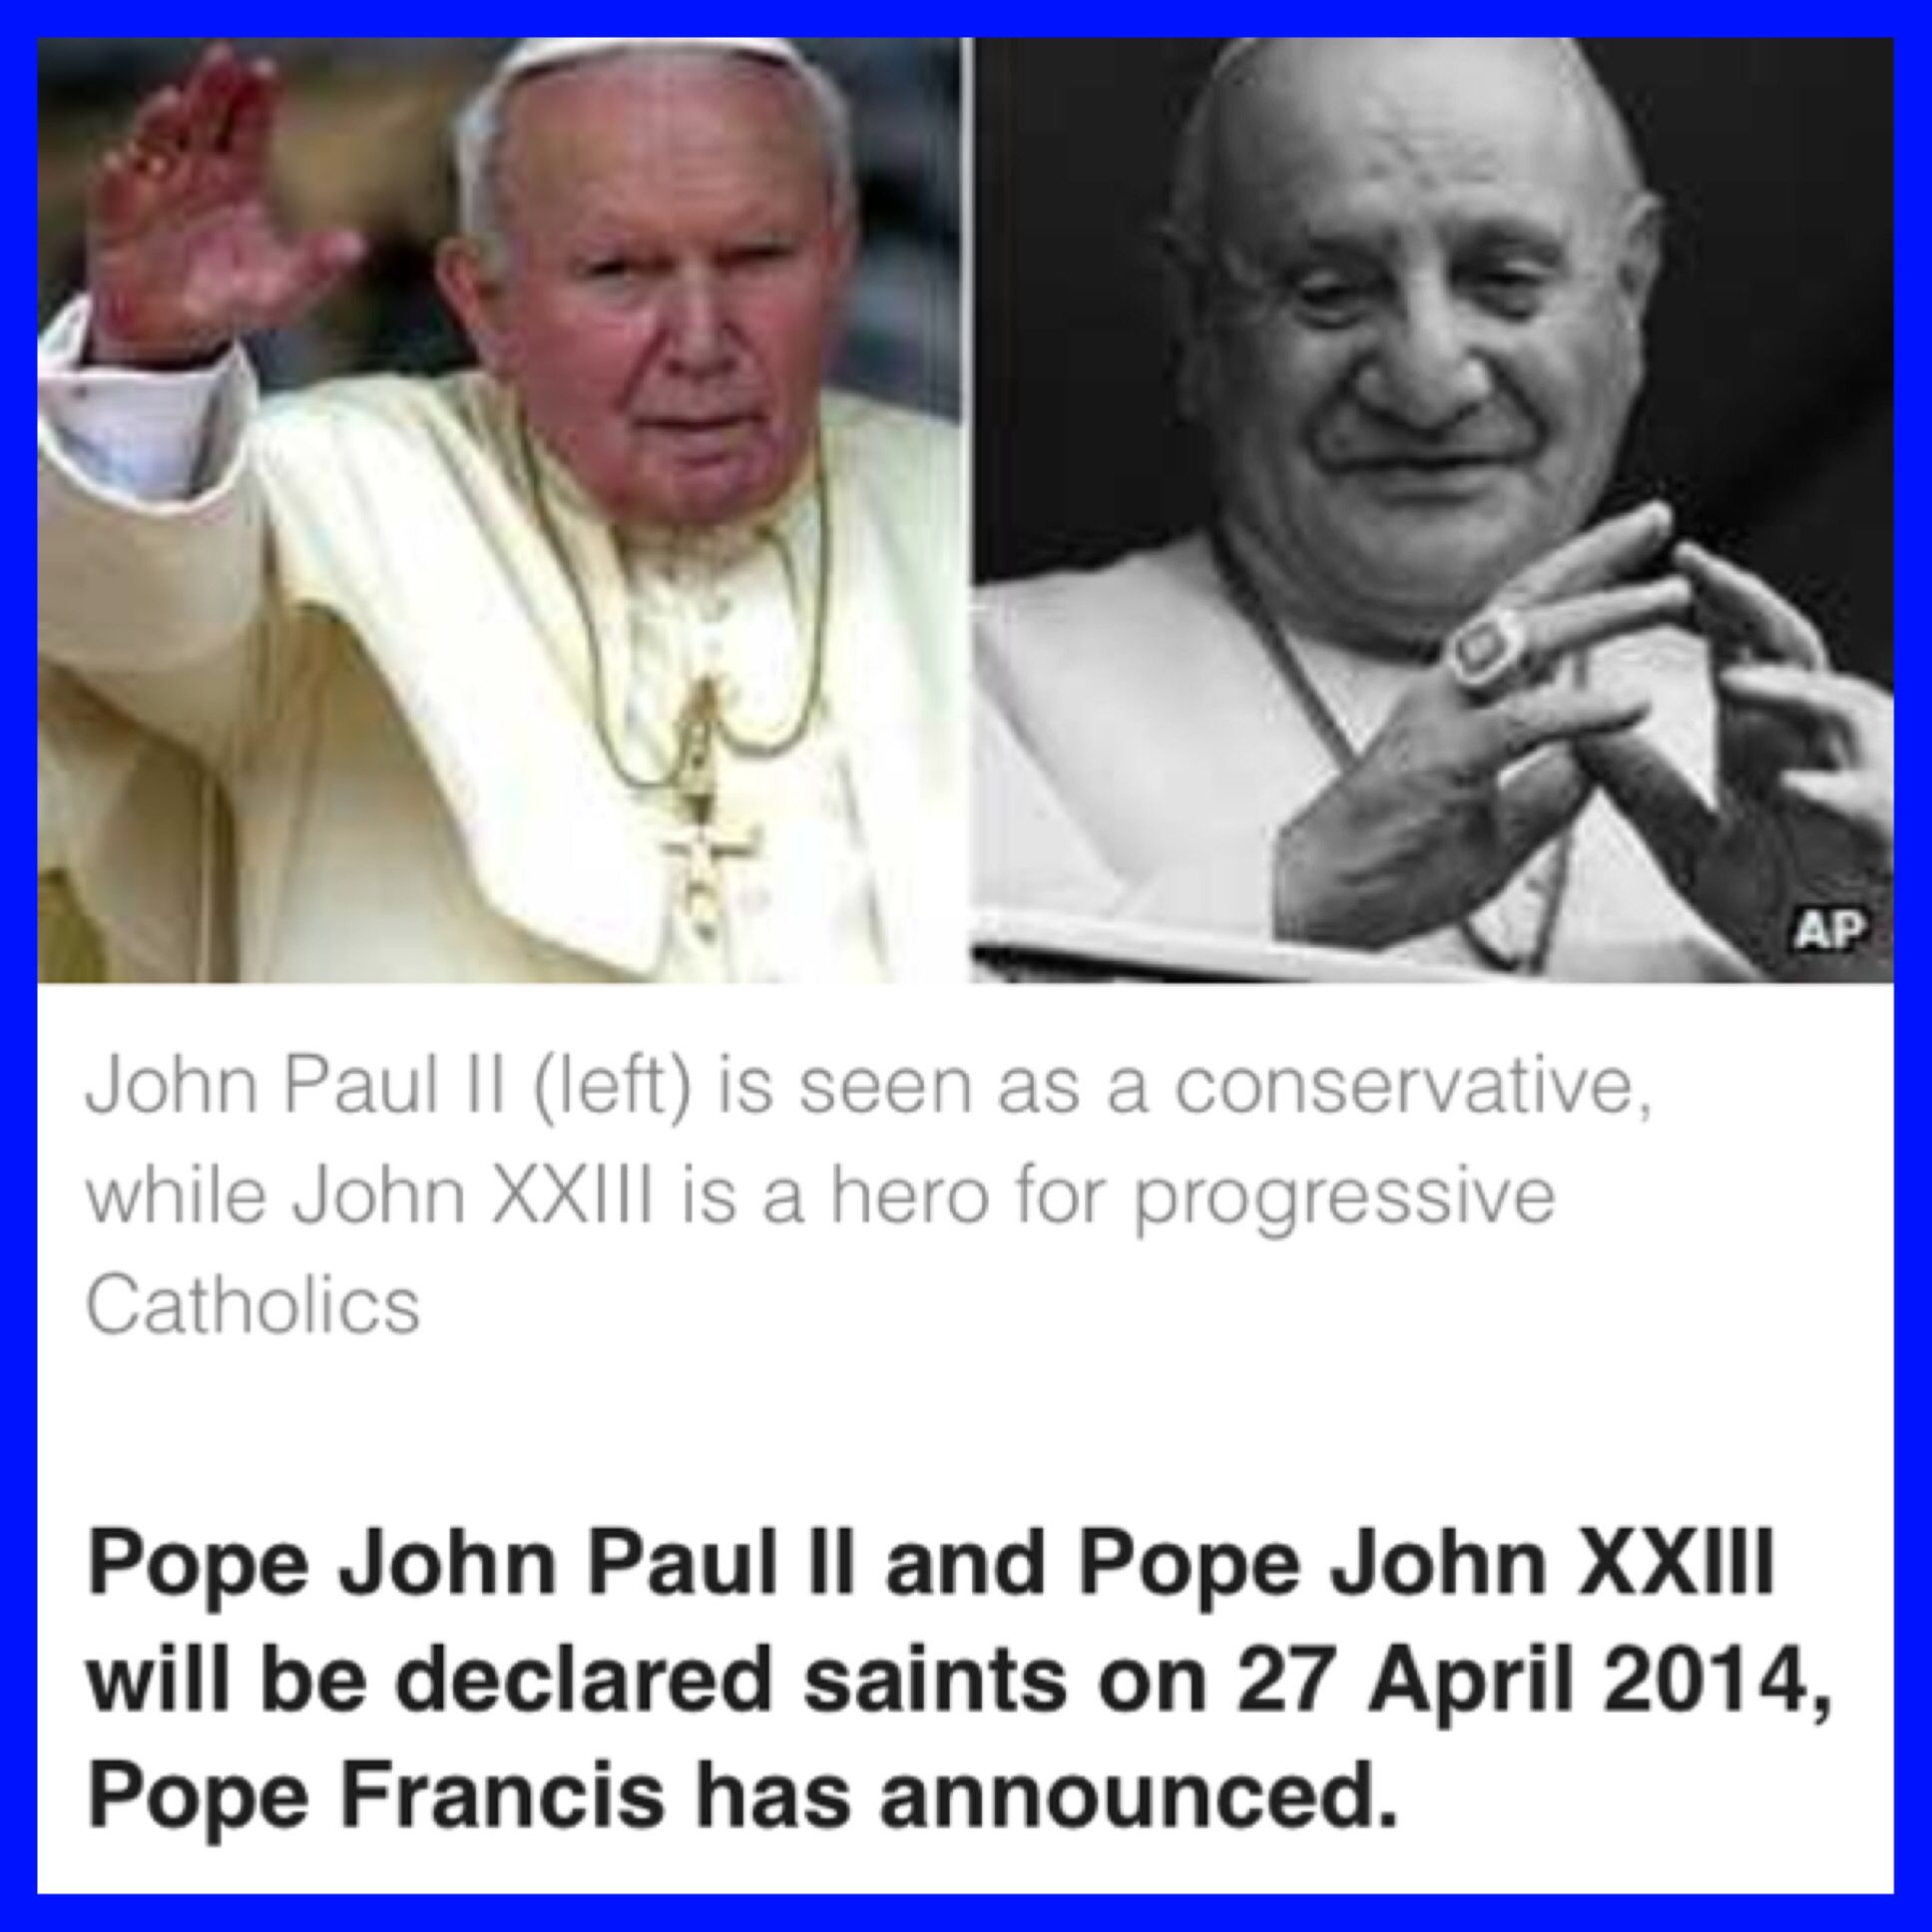 Both pope will become Saints on Sunday 4/27/2014